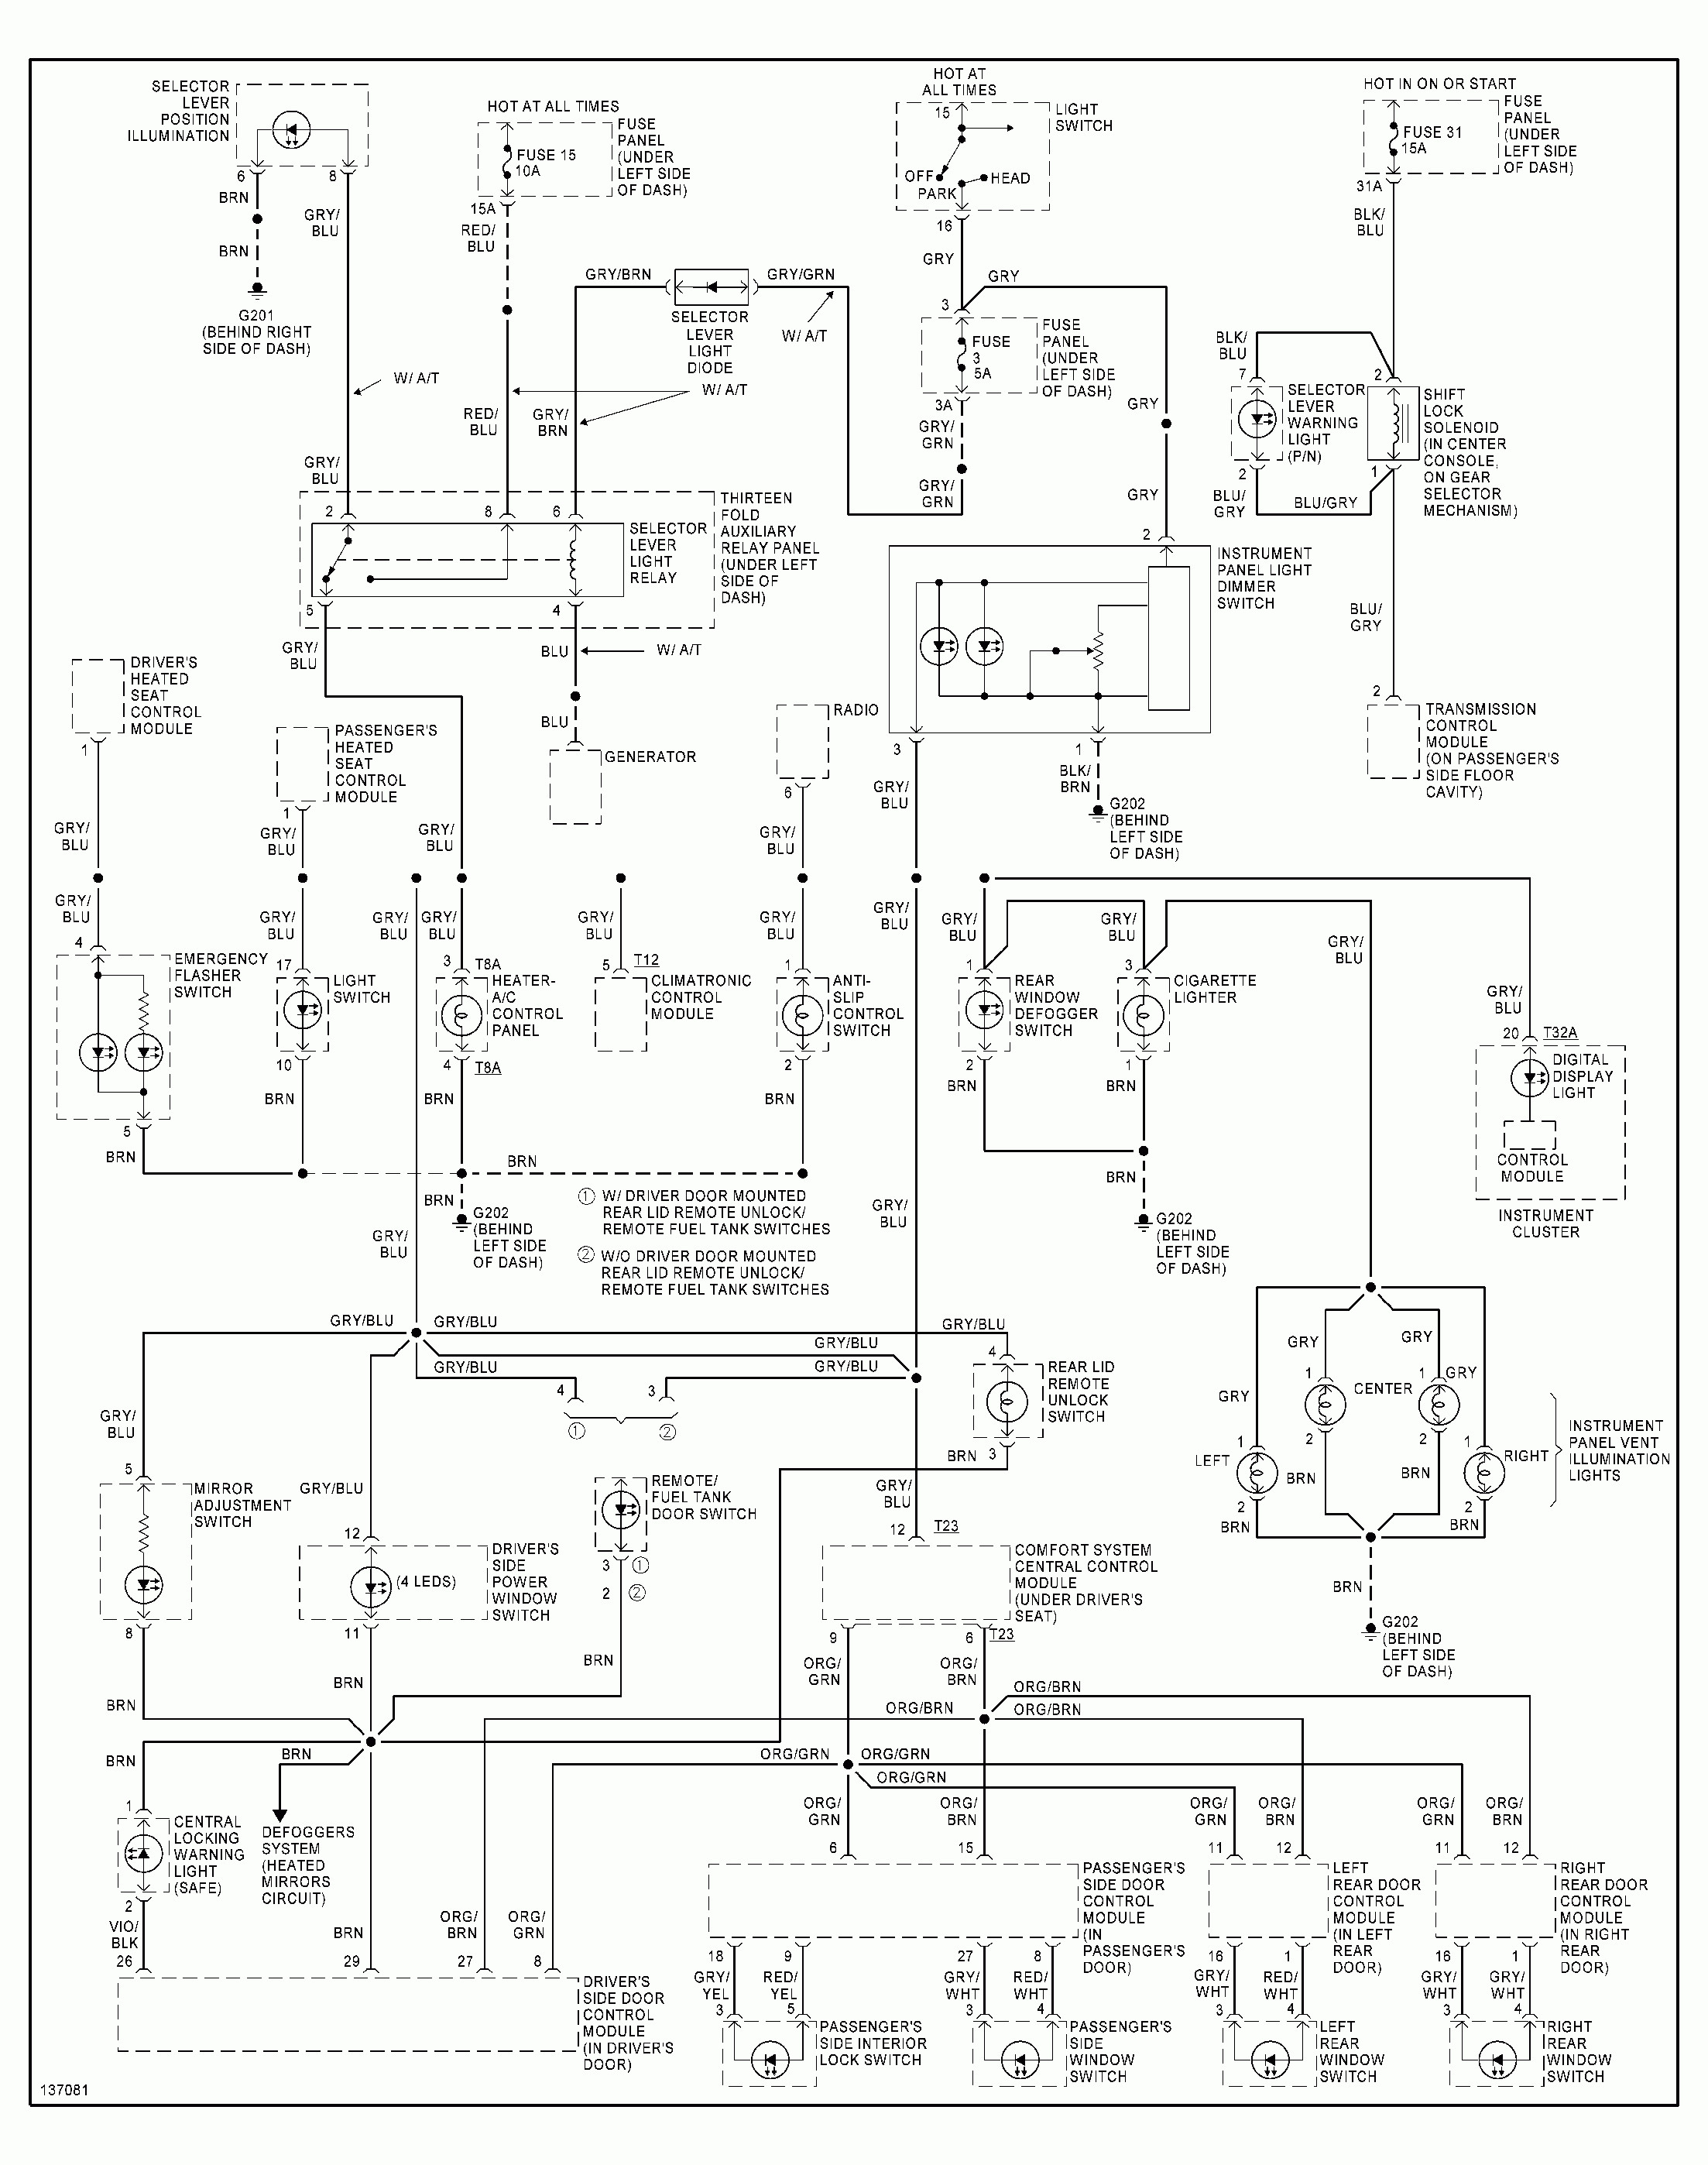 Wiring Diagram Vw Golf 3